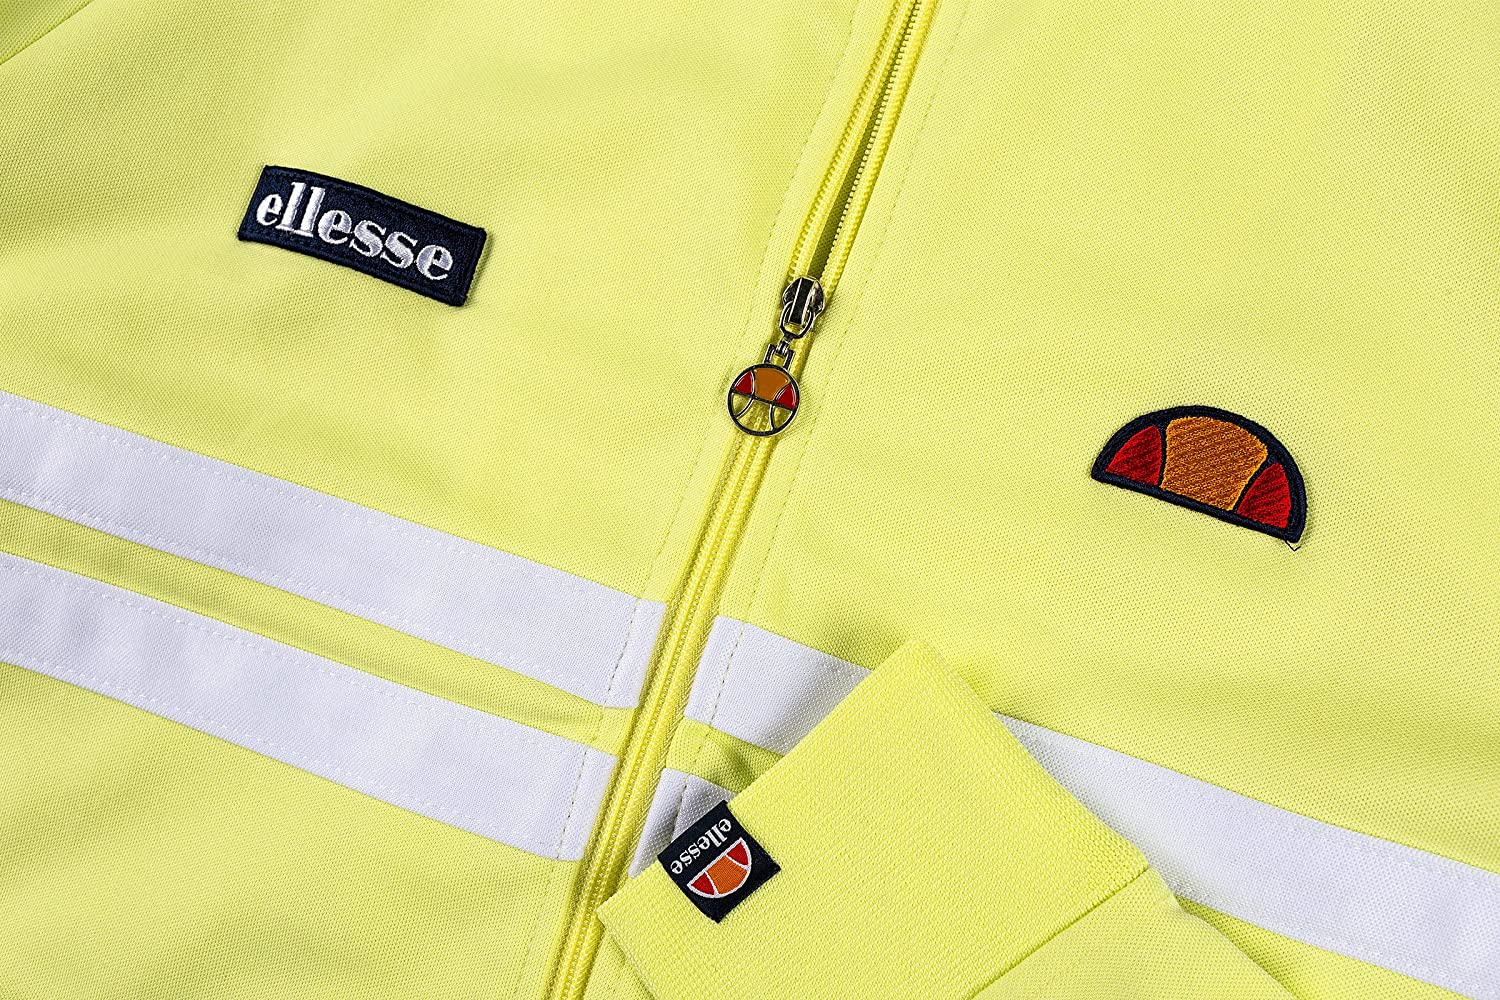 ellesse Men Track Jacket Rimini SHX00892, Size:L, Color ...